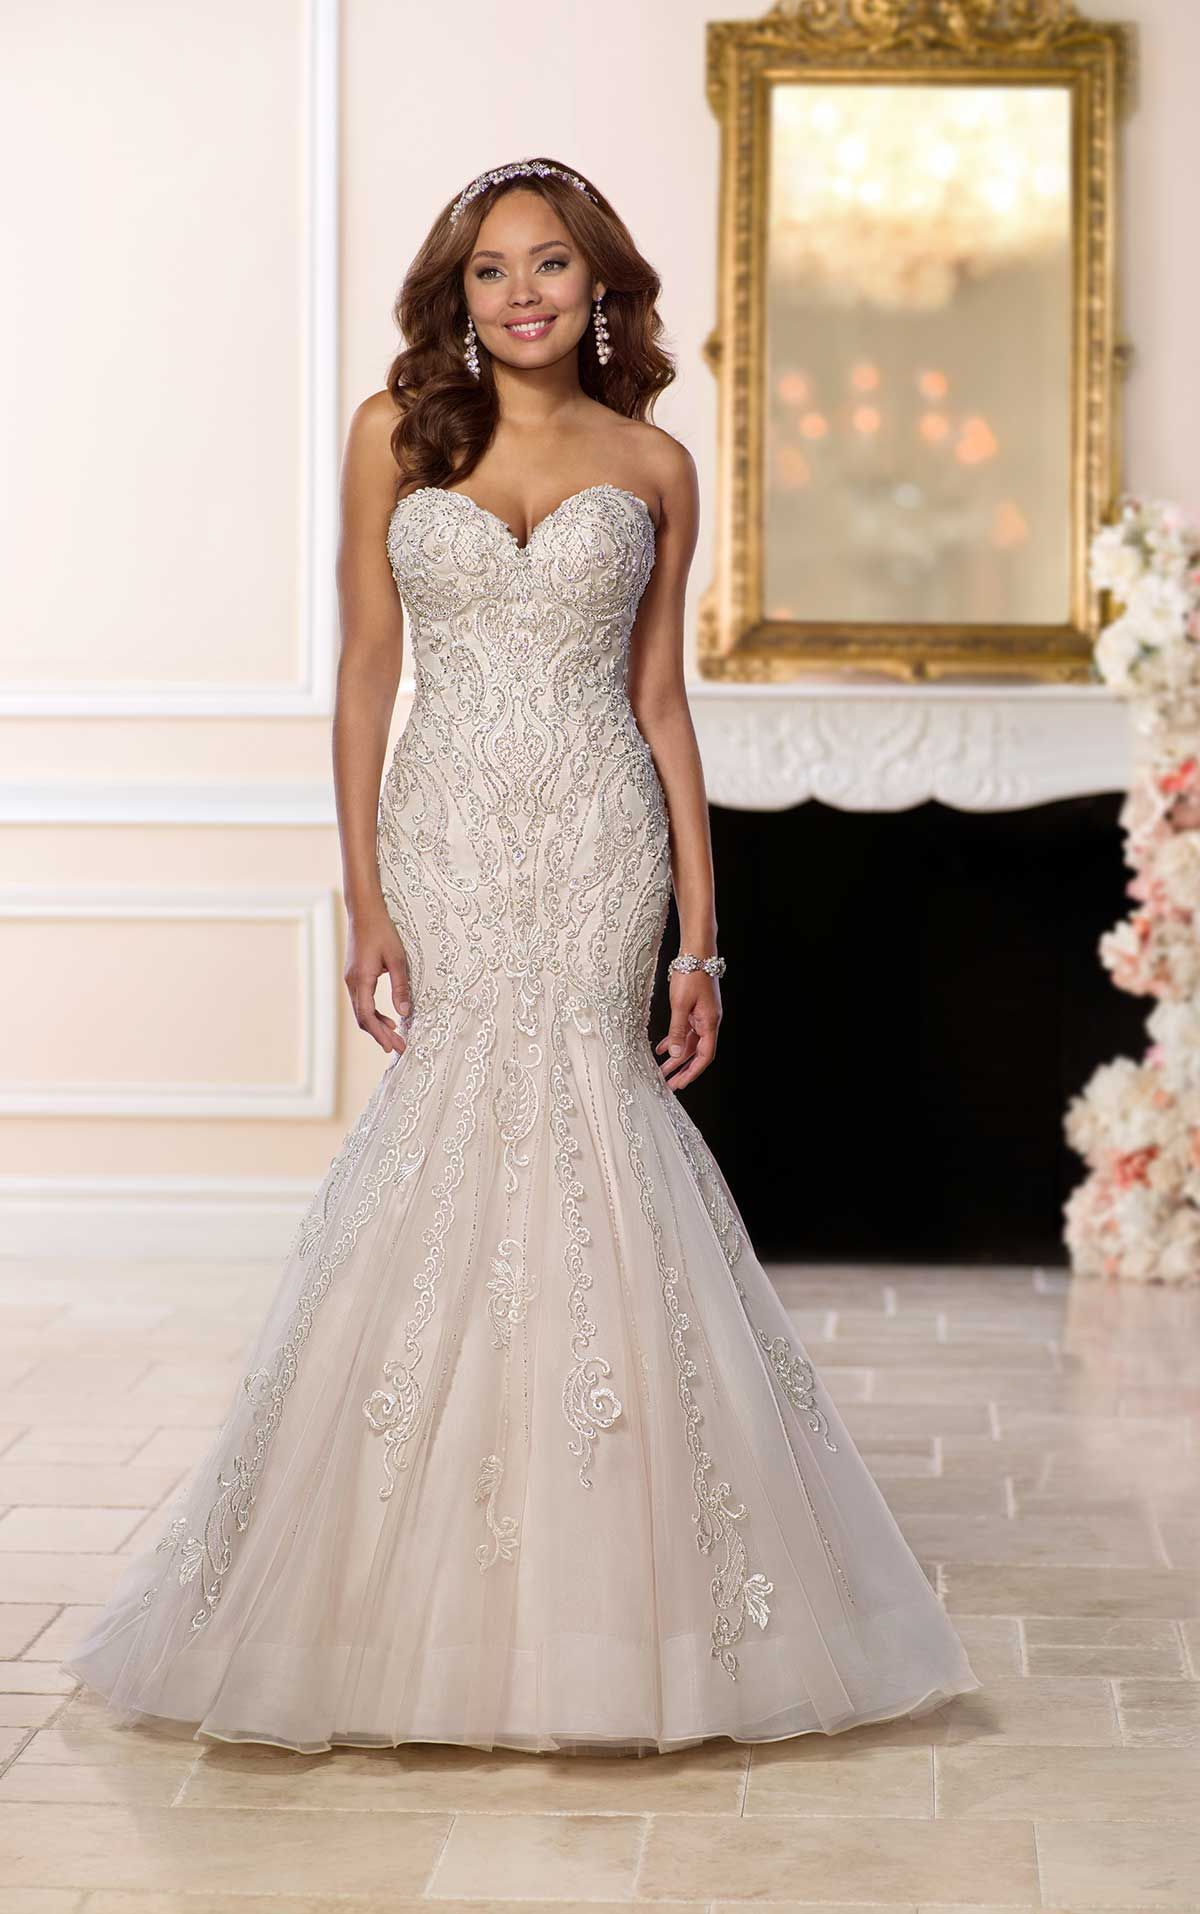 39c2fd8721e Mermaid Wedding Dress with Glamorous Lace in 2019